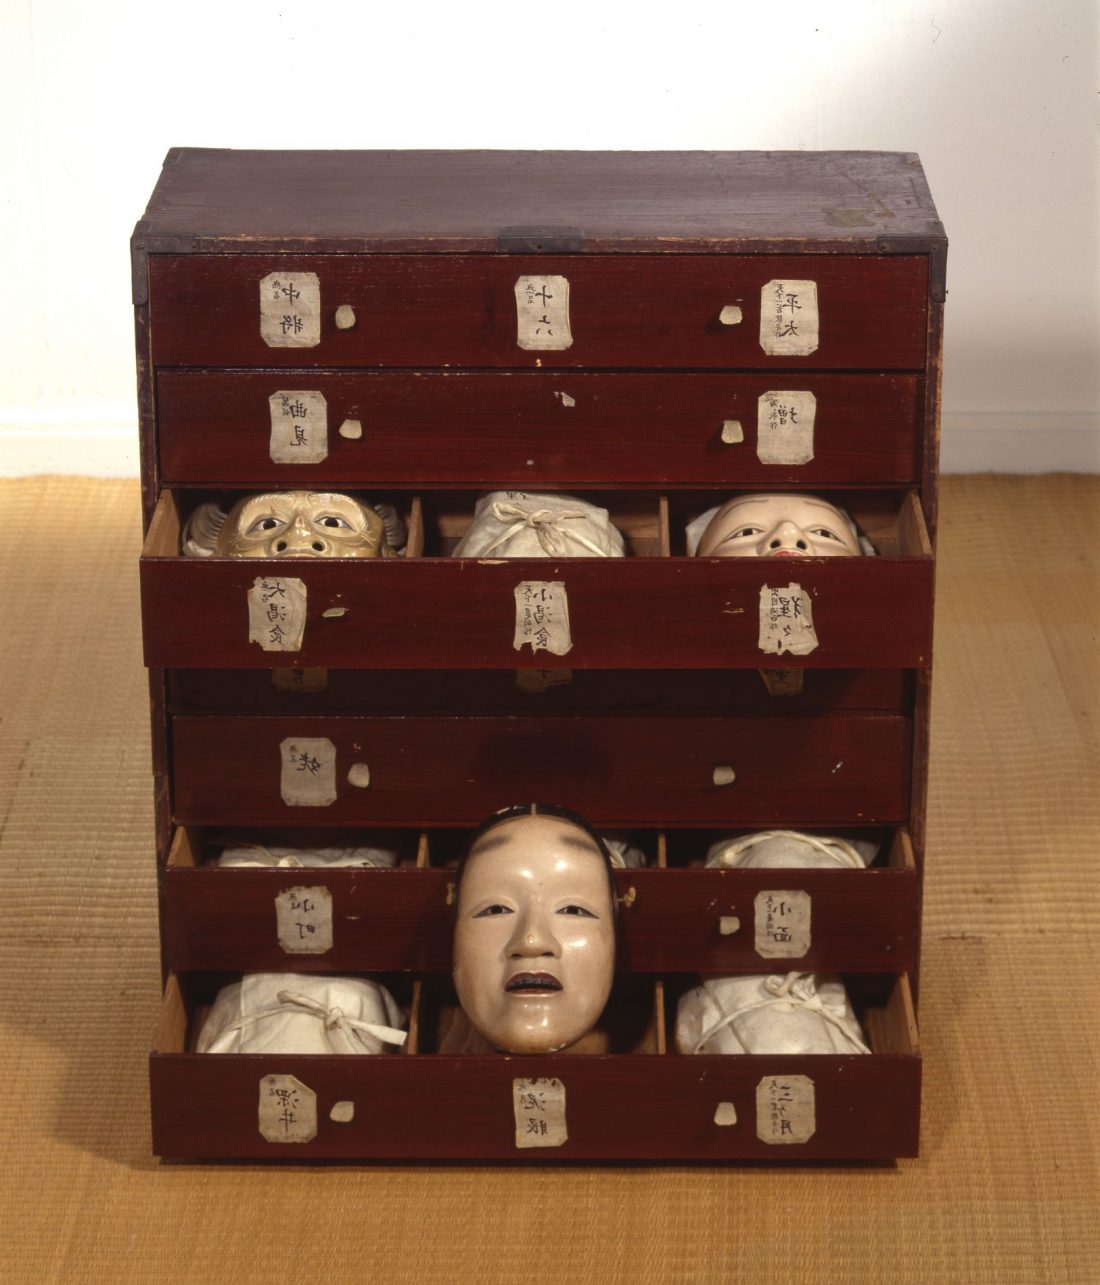 Cabinet with open drawers containing masks